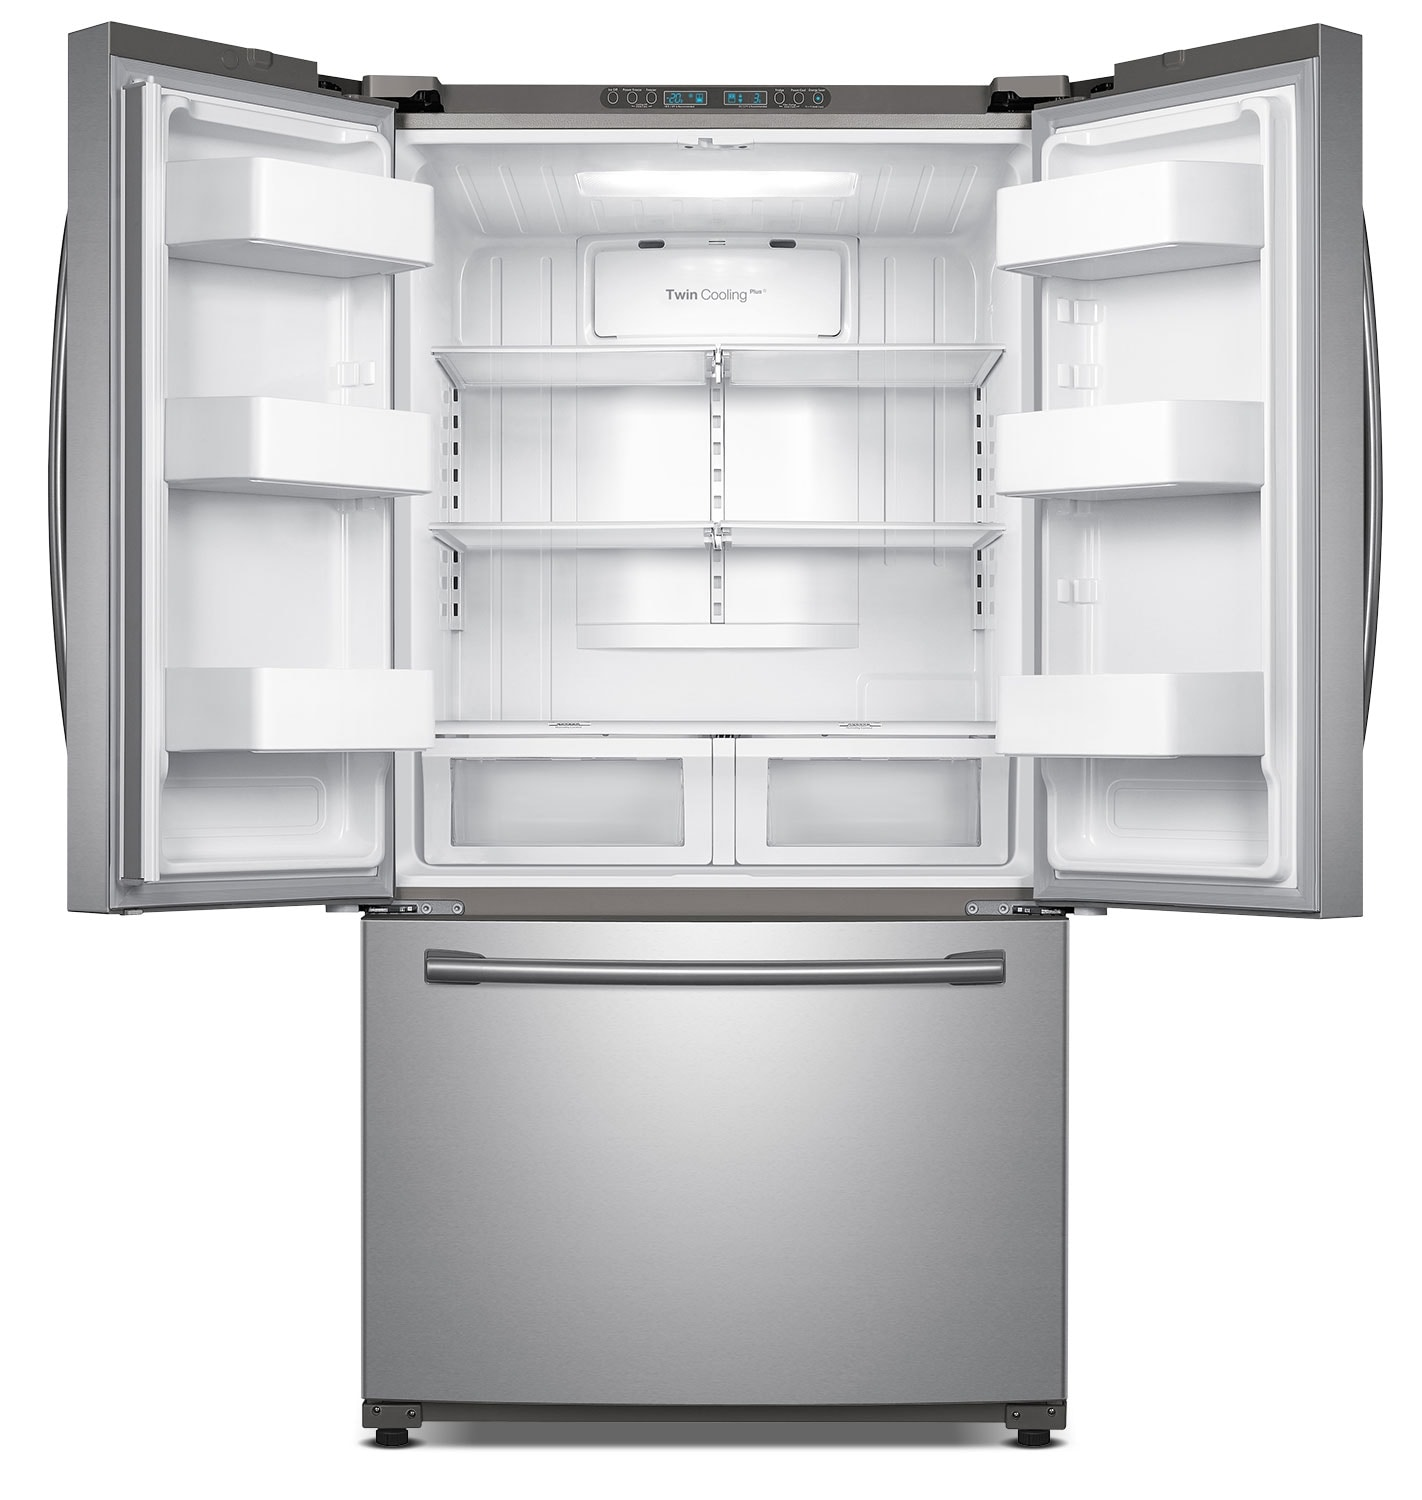 Samsung Stainless Steel French Door Refrigerator 255 Cu